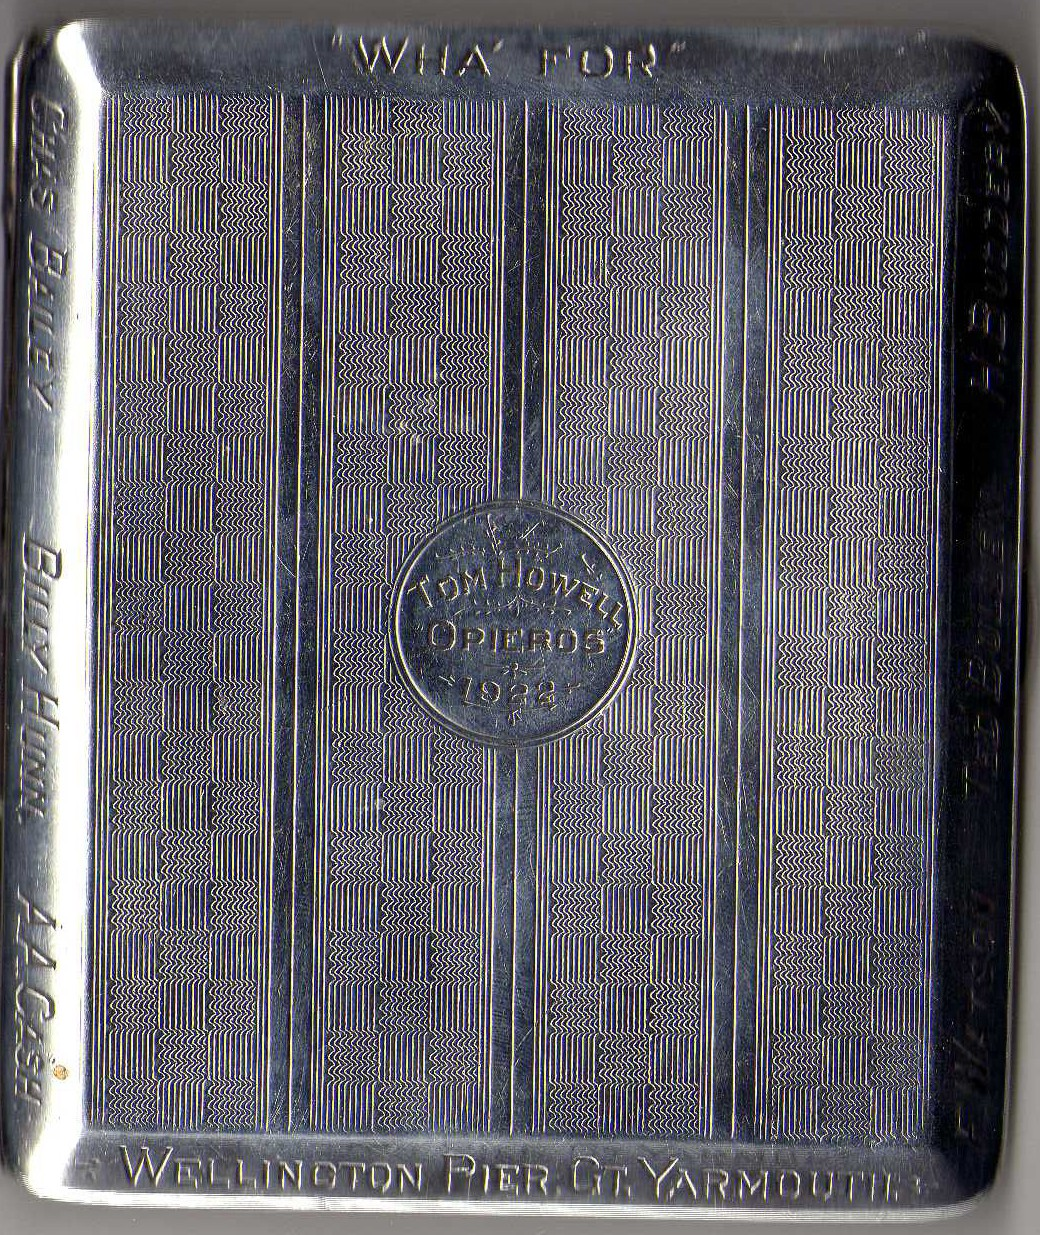 cigarette-case-from-cast-to-tom-img211